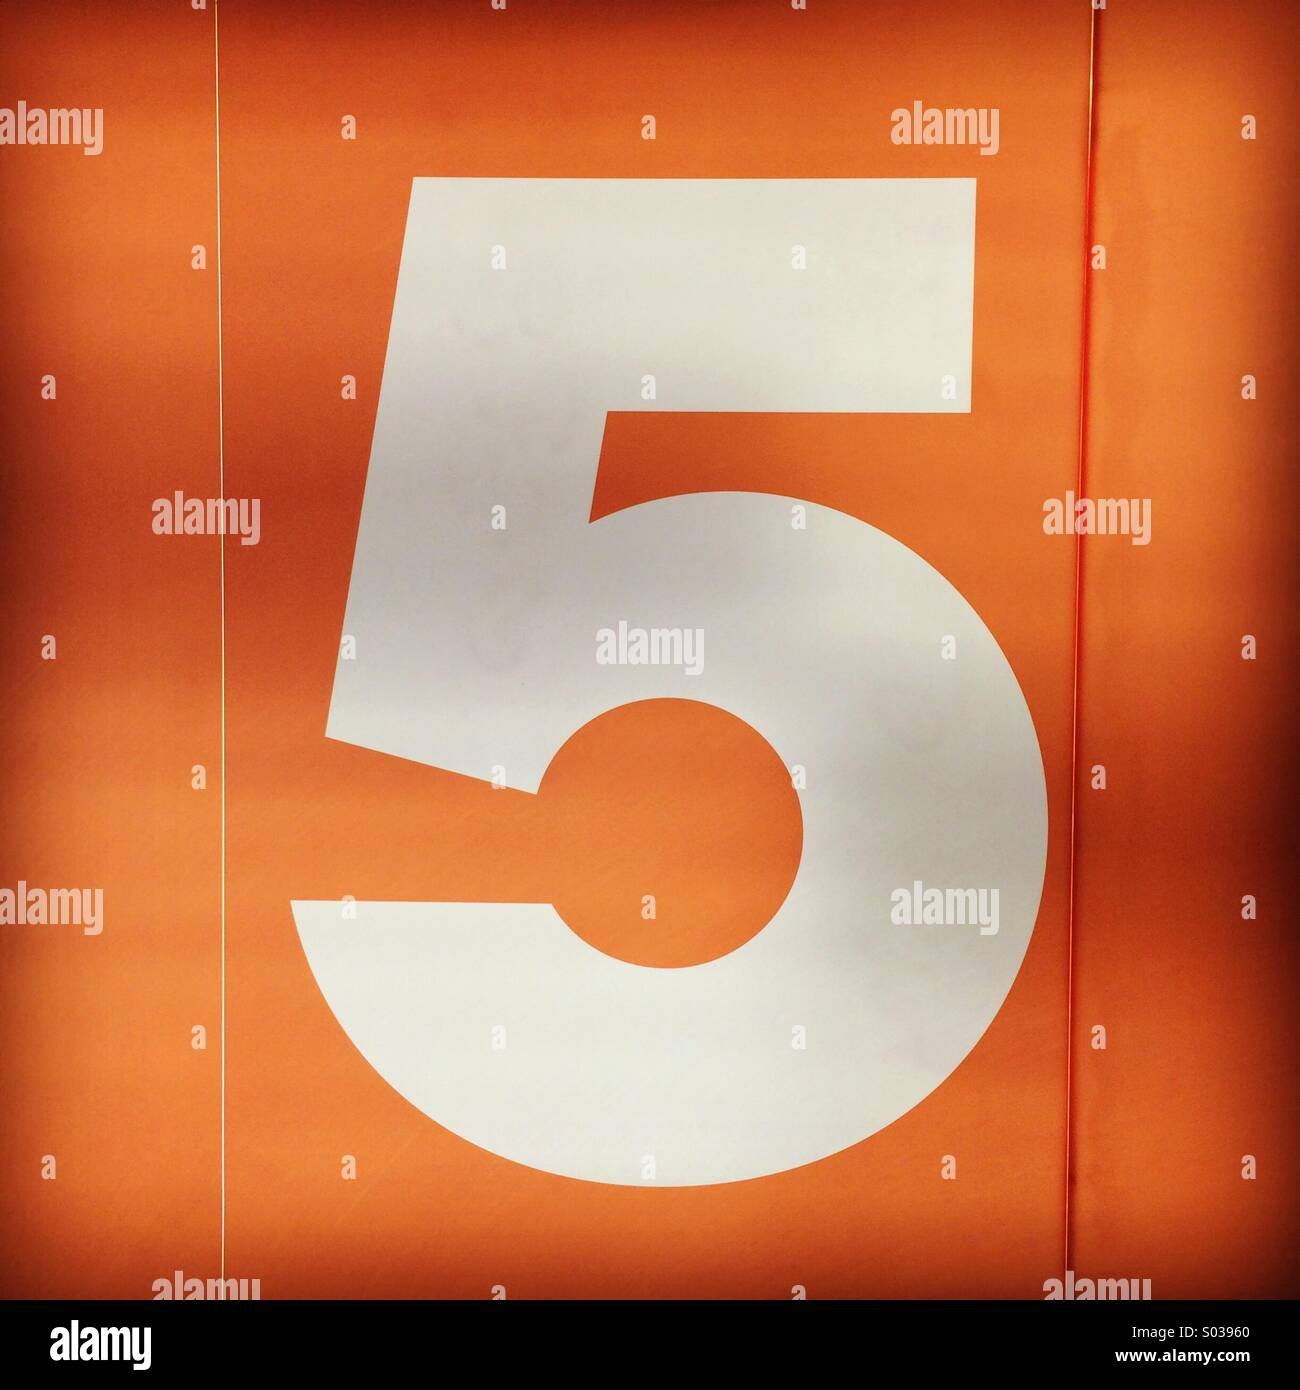 White number five floor number on an orange background. - Stock Image